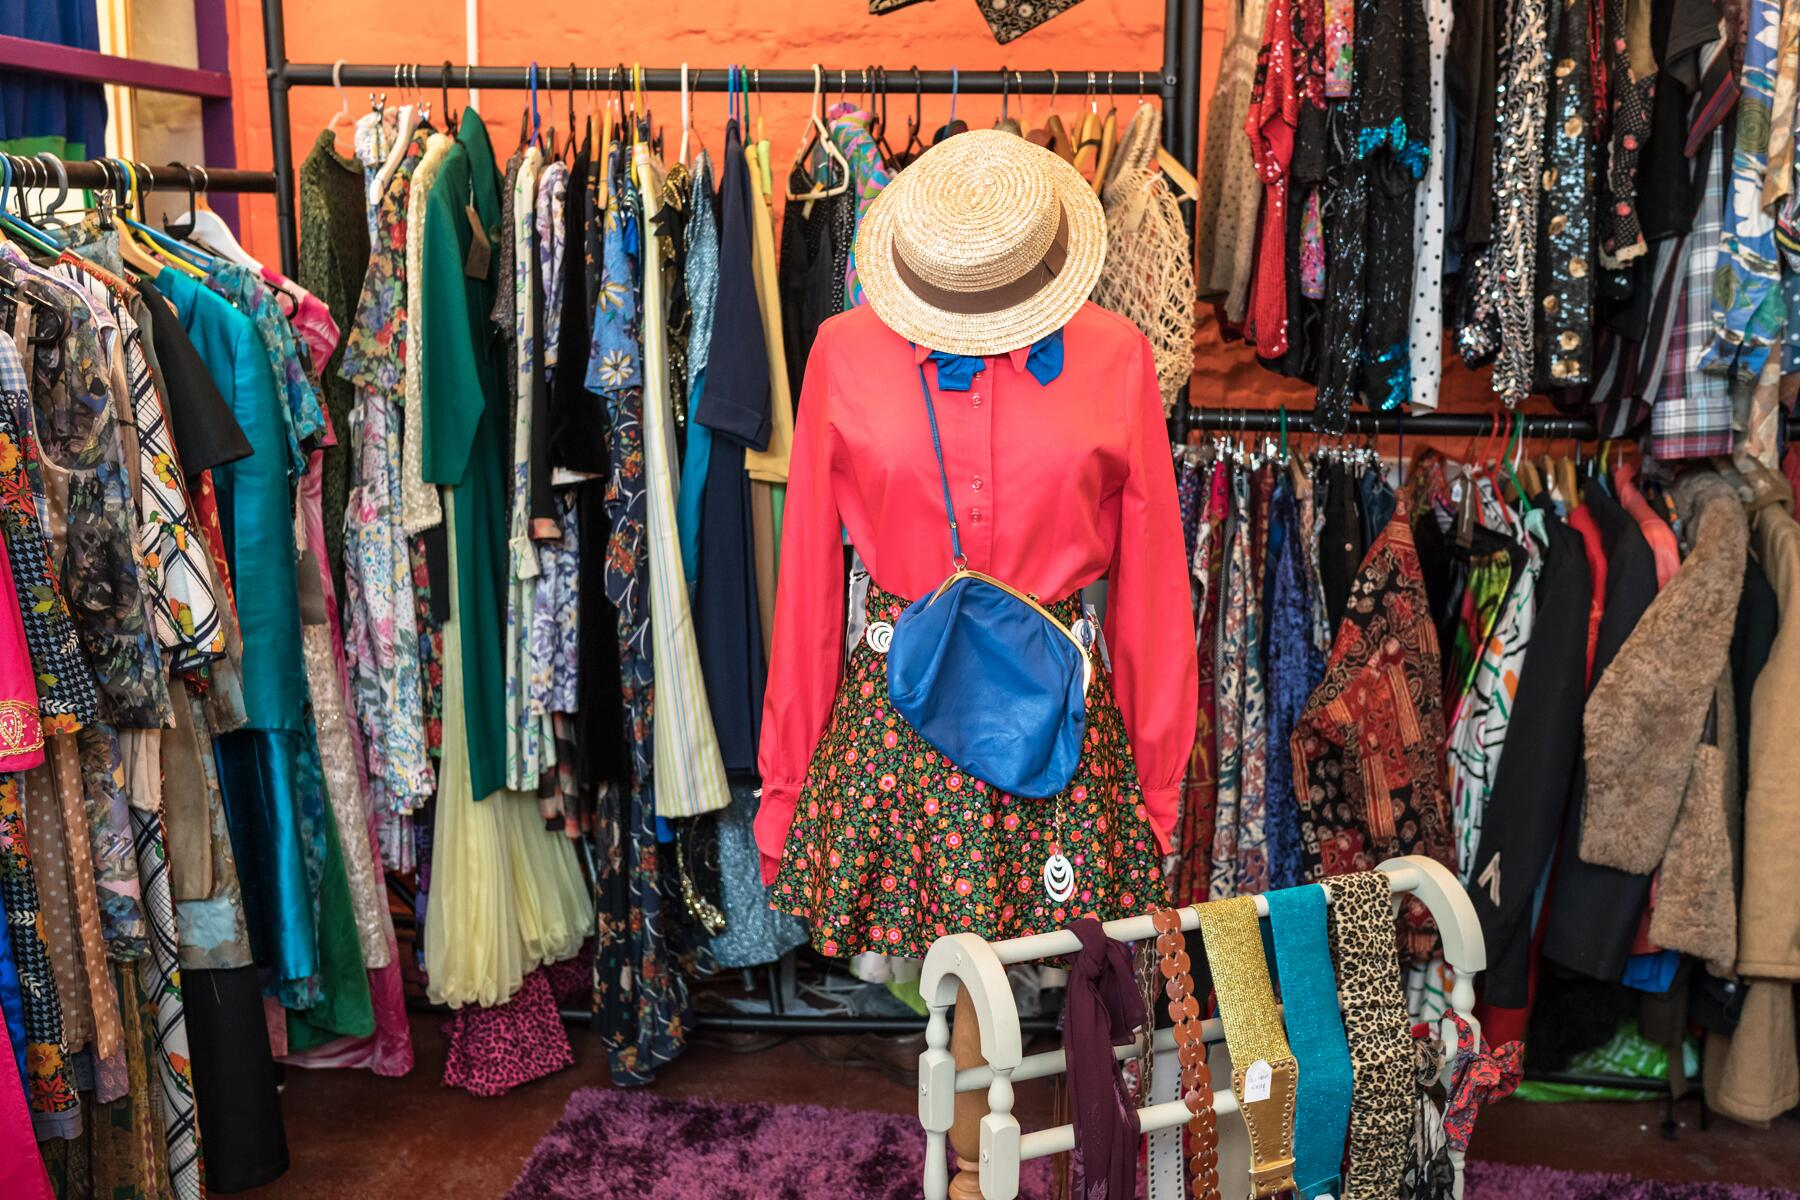 The Best Thrift Stores In Palm Springs